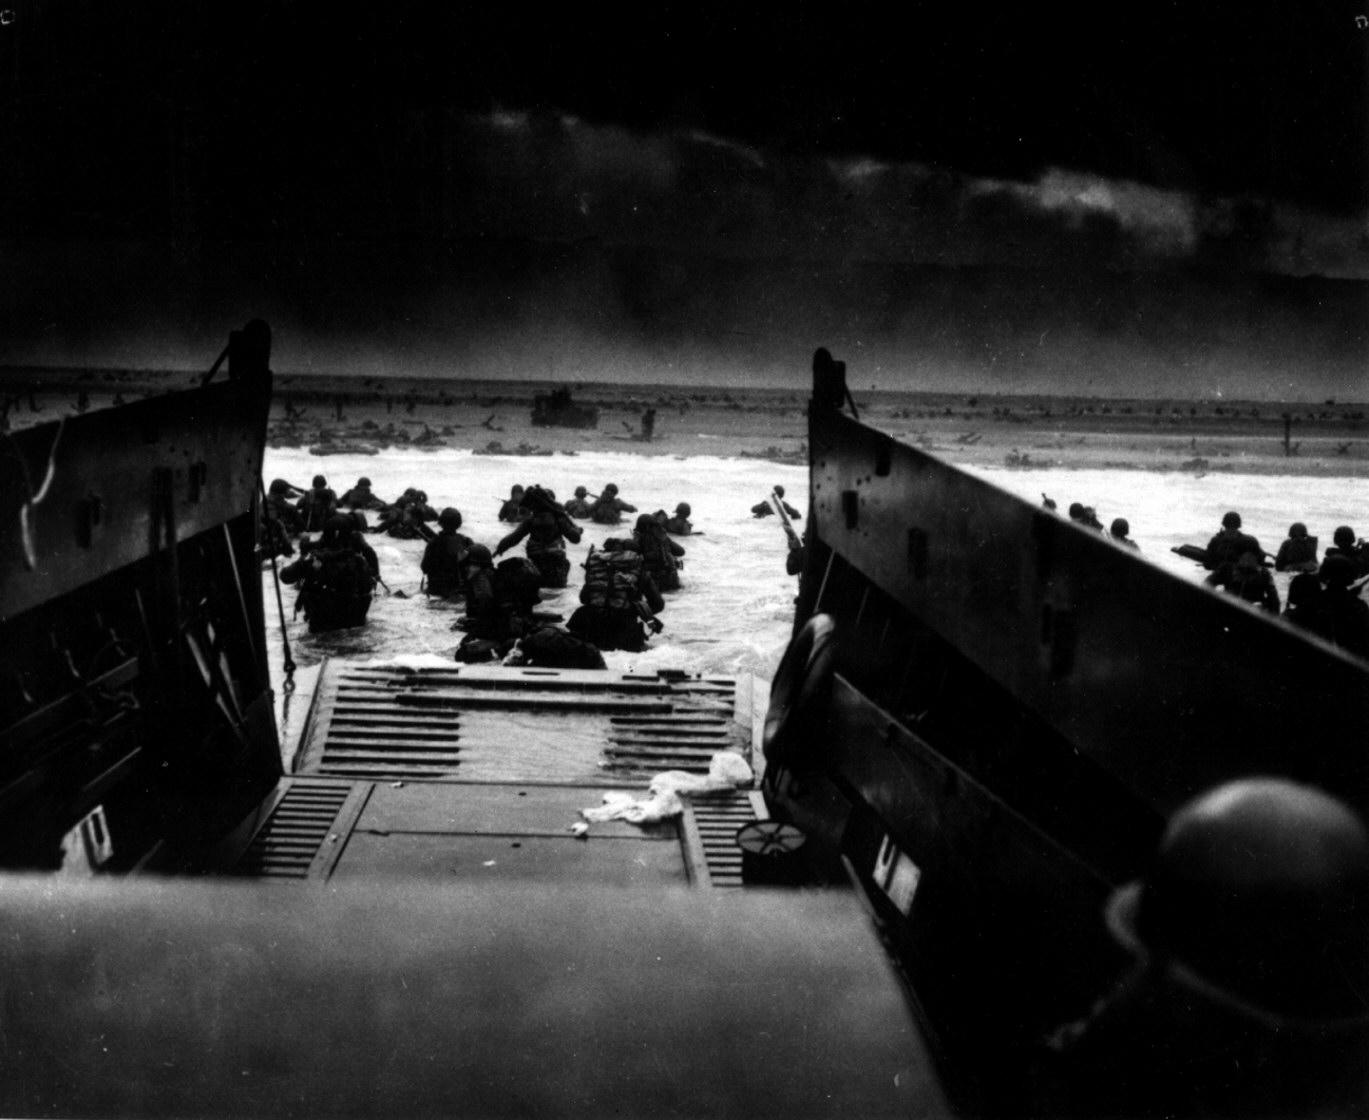 U.S. Soldiers Landing in France on D-Day